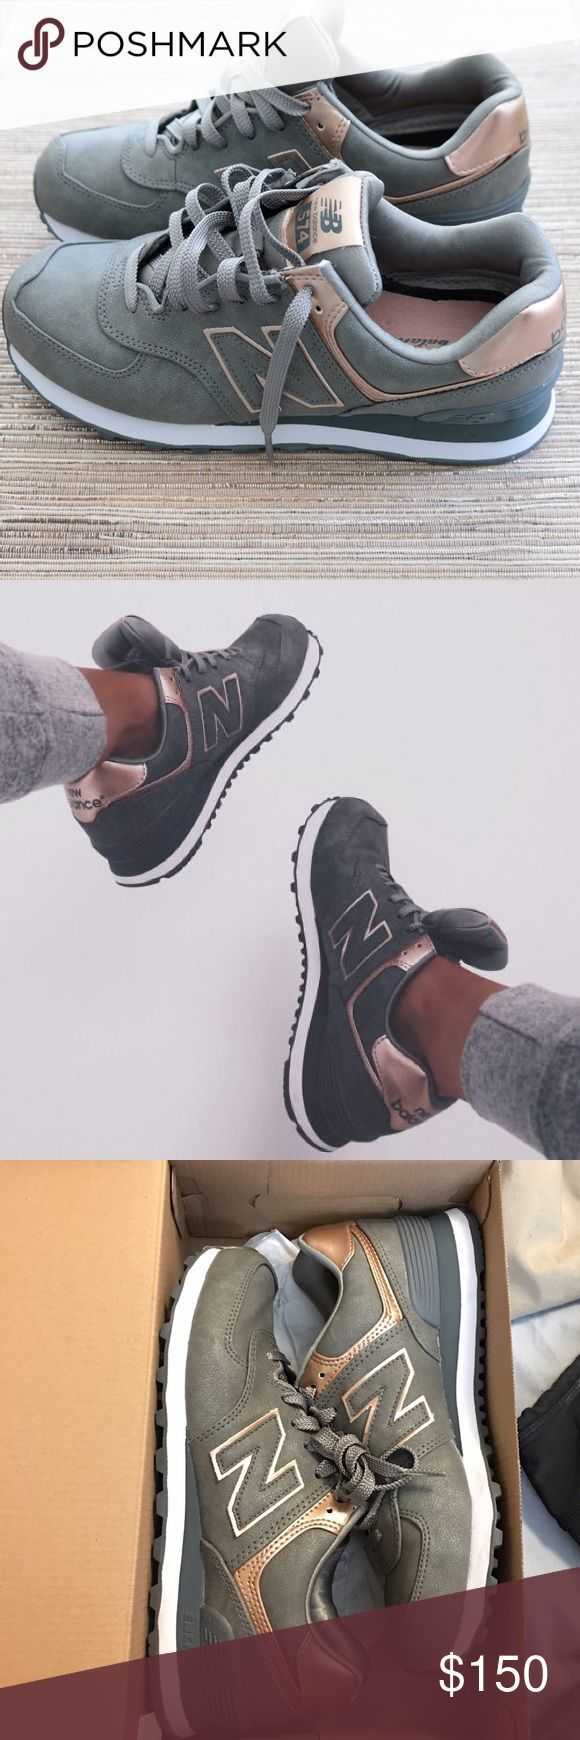 Trendy Sneakers 2017/ 2018 : New balance rose gold and silver These are are very rare to find nowadays espec